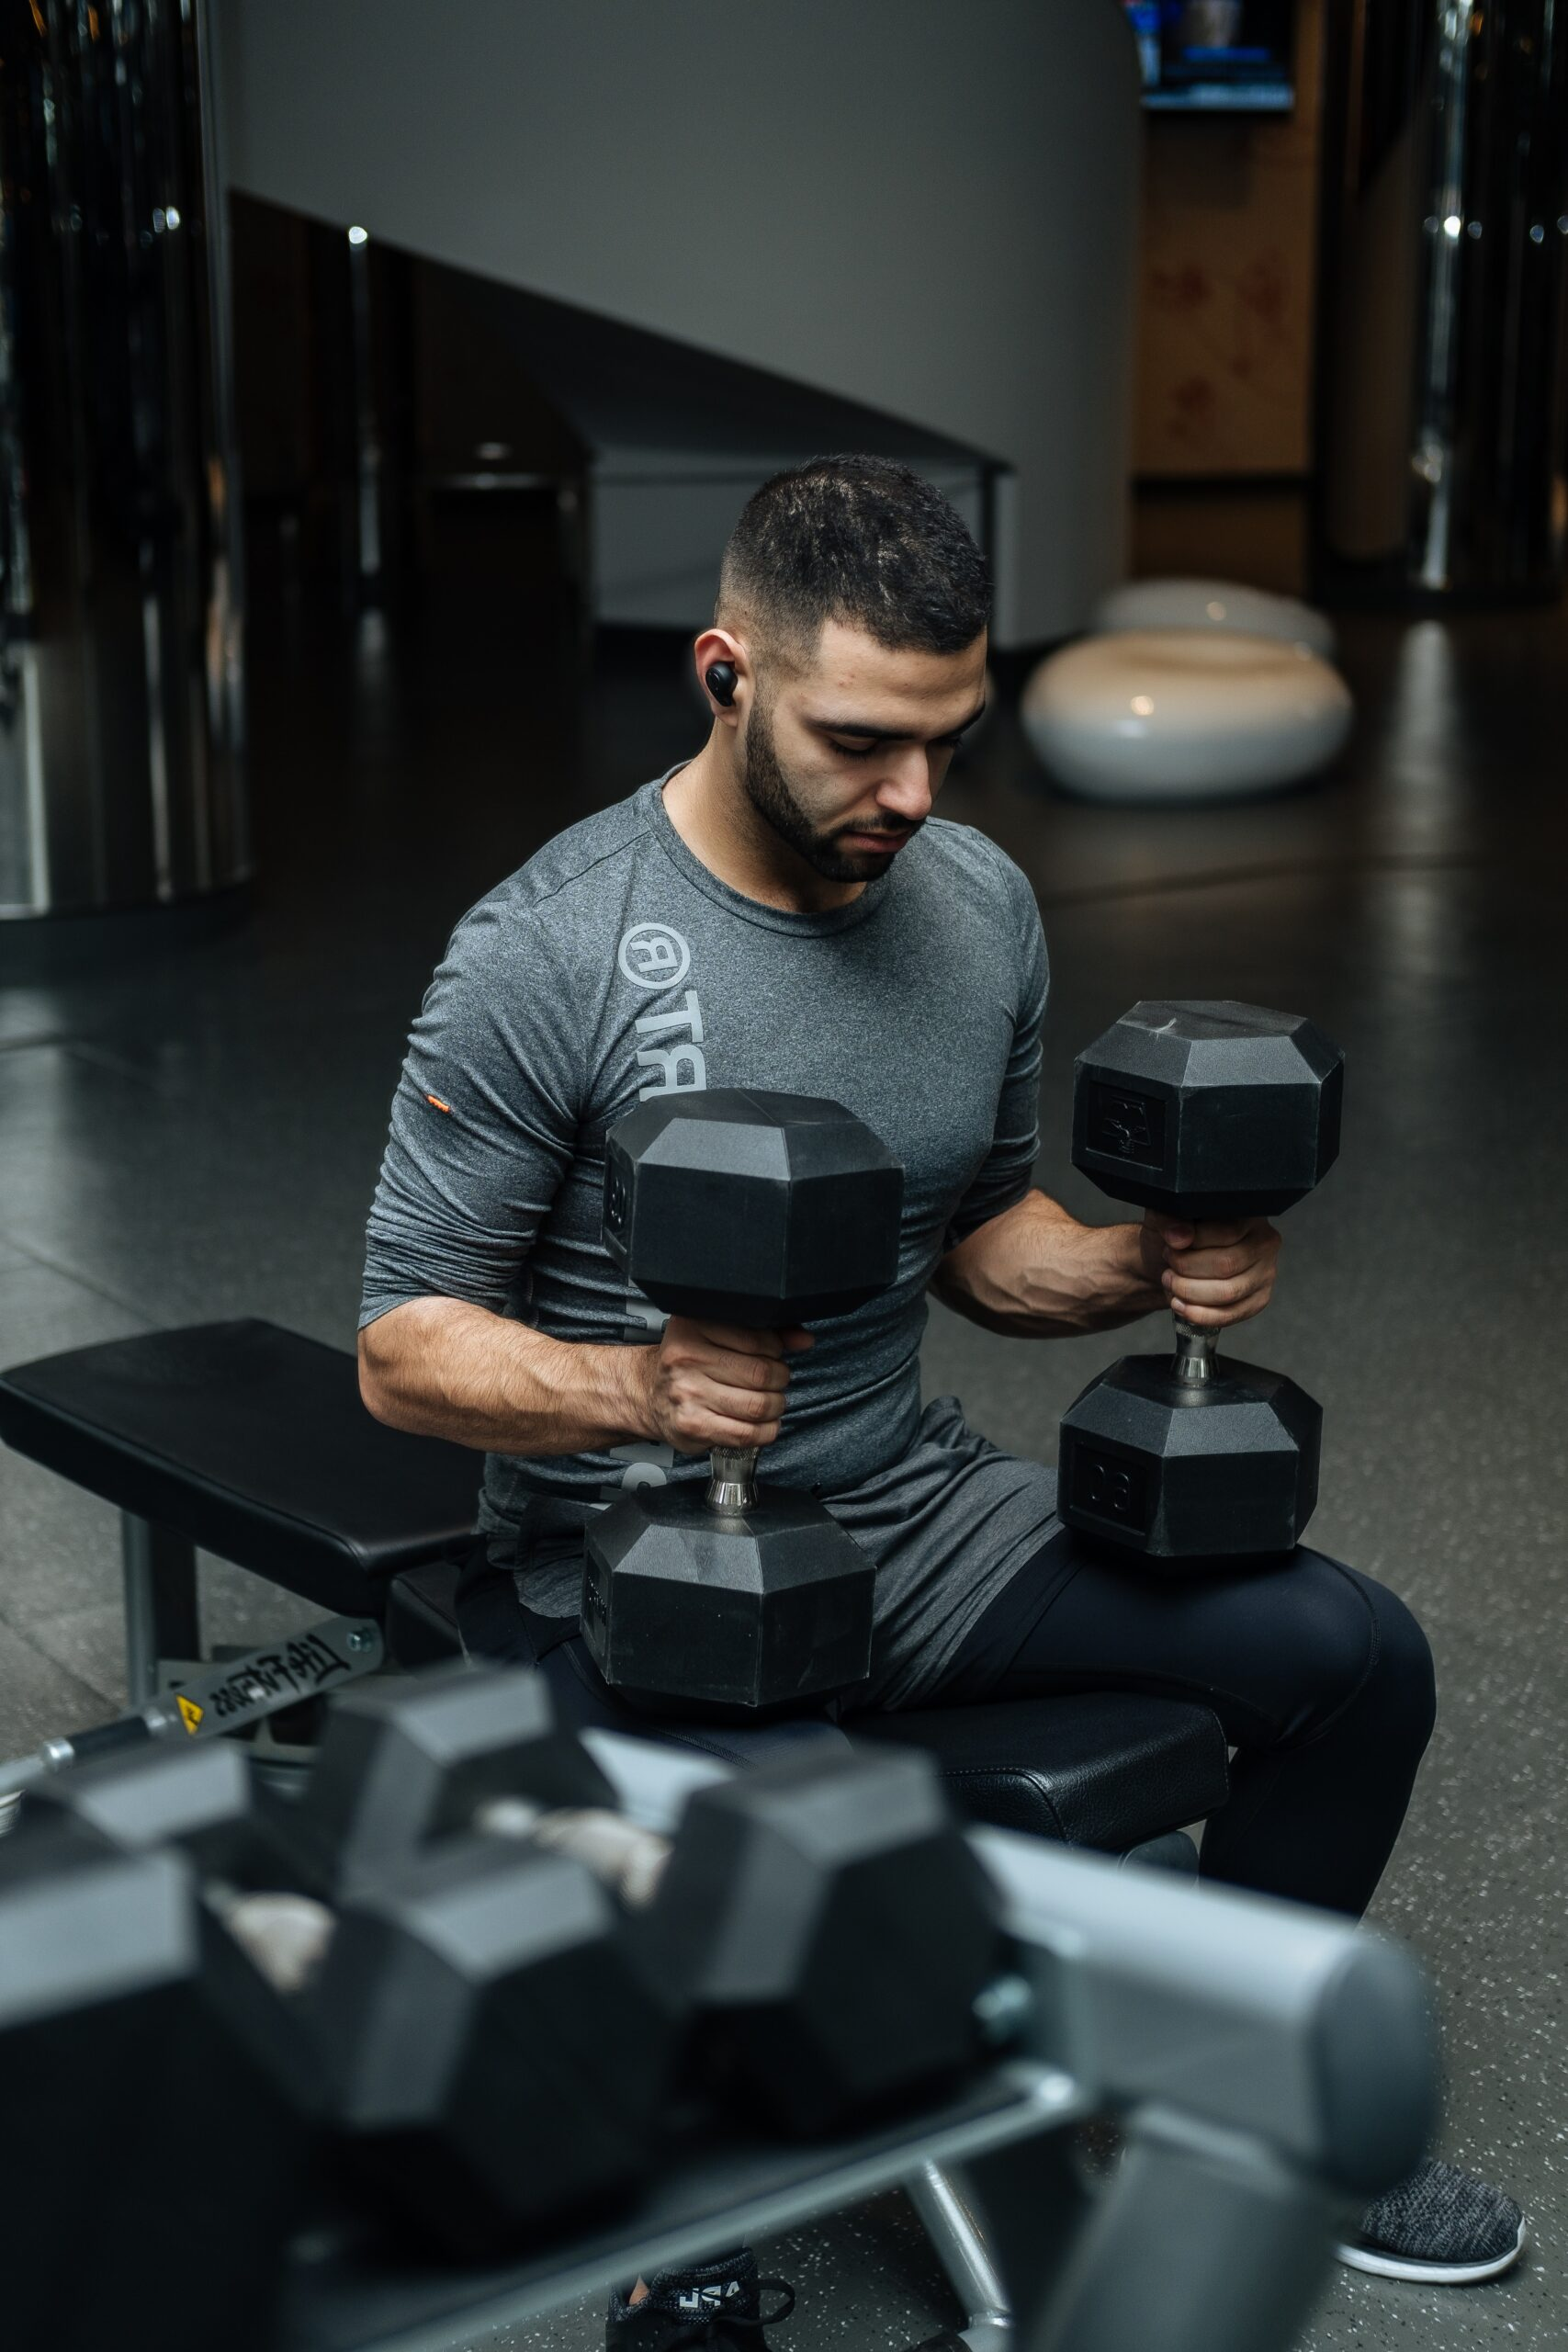 photo of man siting on bench lifting dumbells during exercise workout